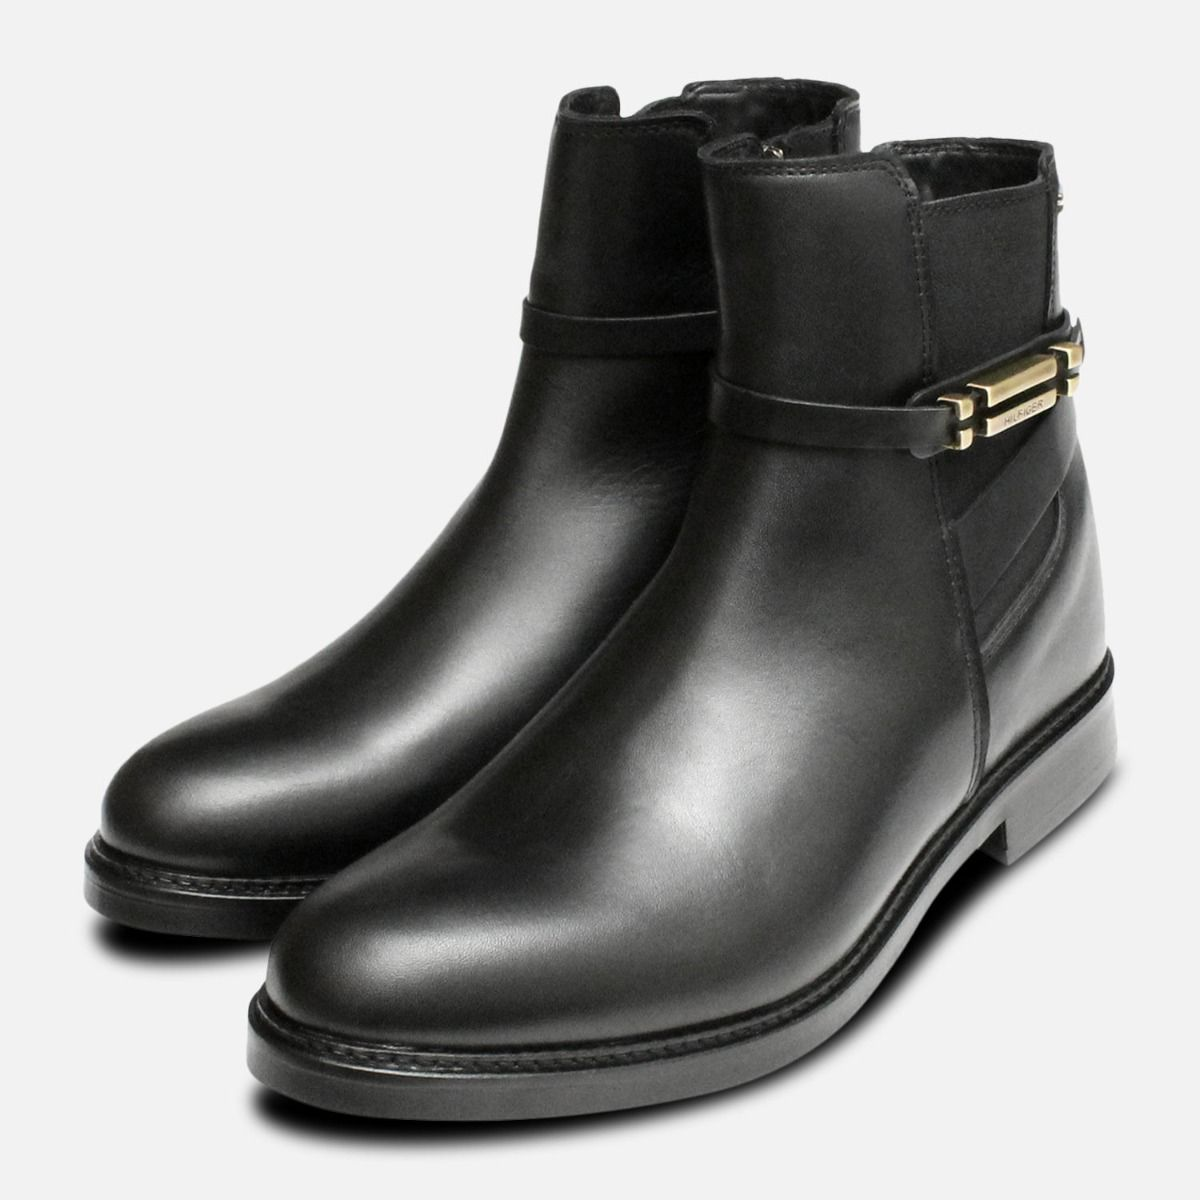 147a60f63c0 Waterproof Tommy Hilfiger Black Holly Chelsea Boots